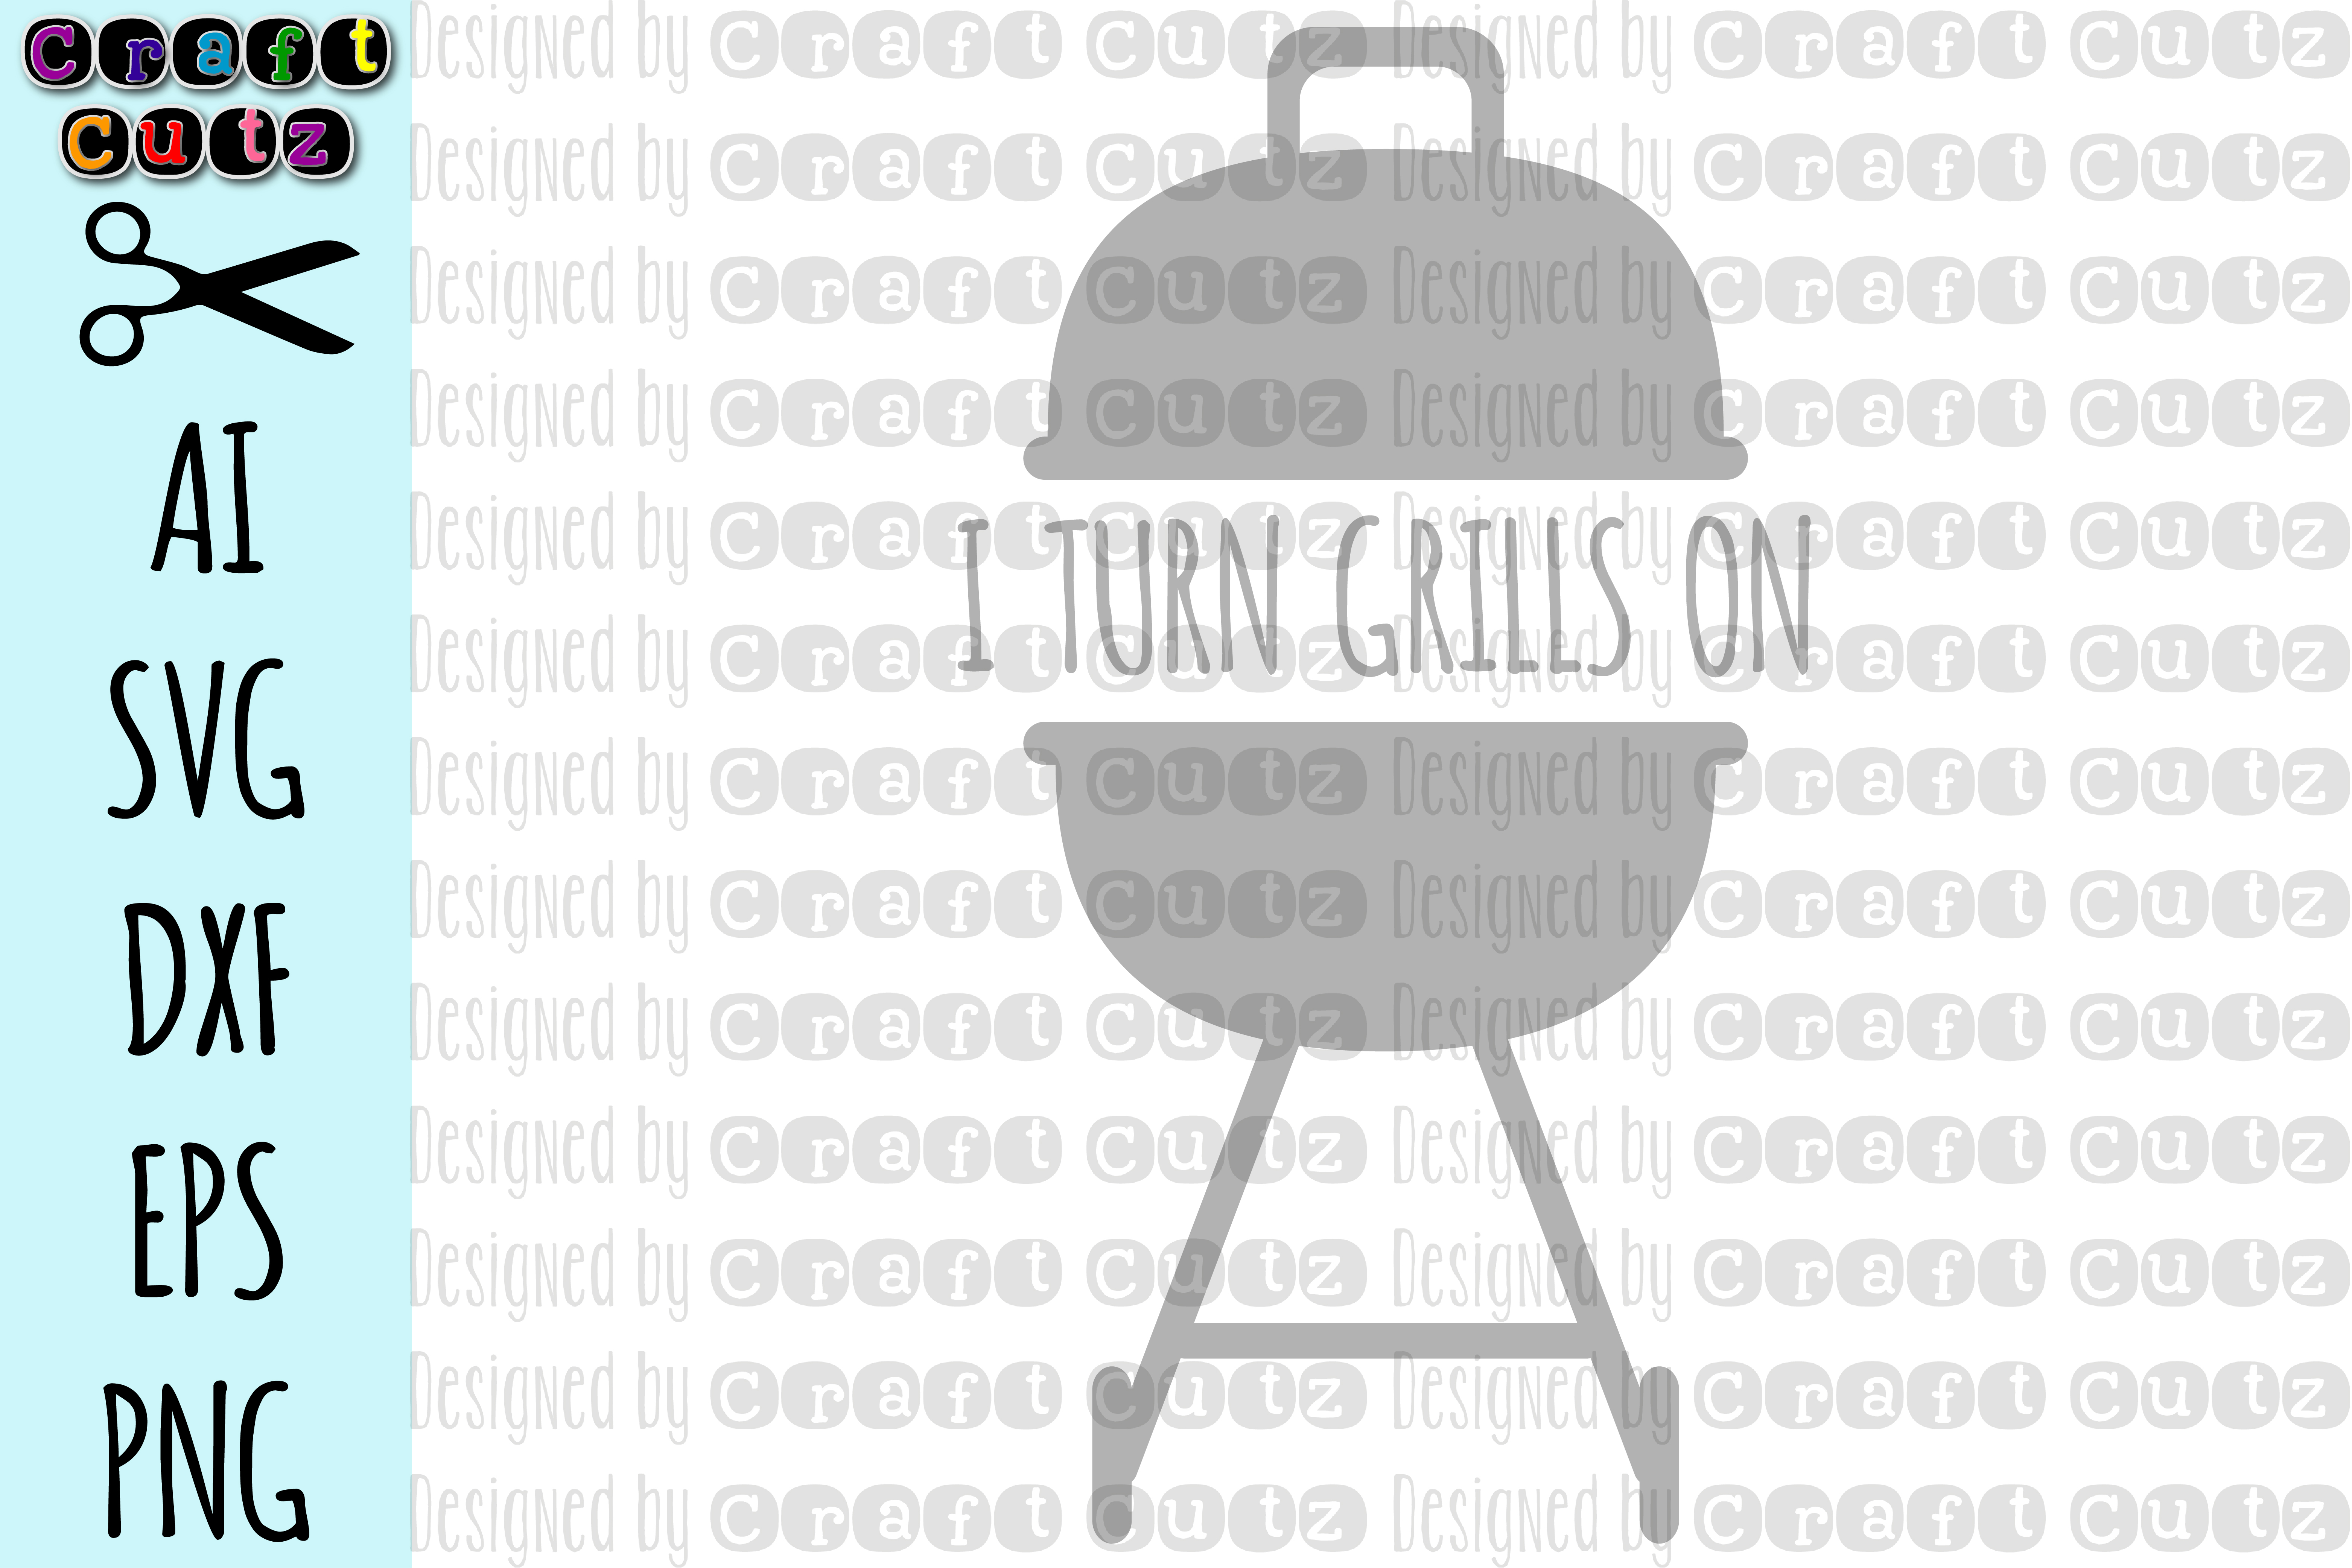 Grilling Dad SVG, BBQ svg, Daddy DXF, Father Shirt, Fathers Day svg,  Barbecue, Summer Cut File, Funny Guy, Grill Apron, Funny Grilling svg